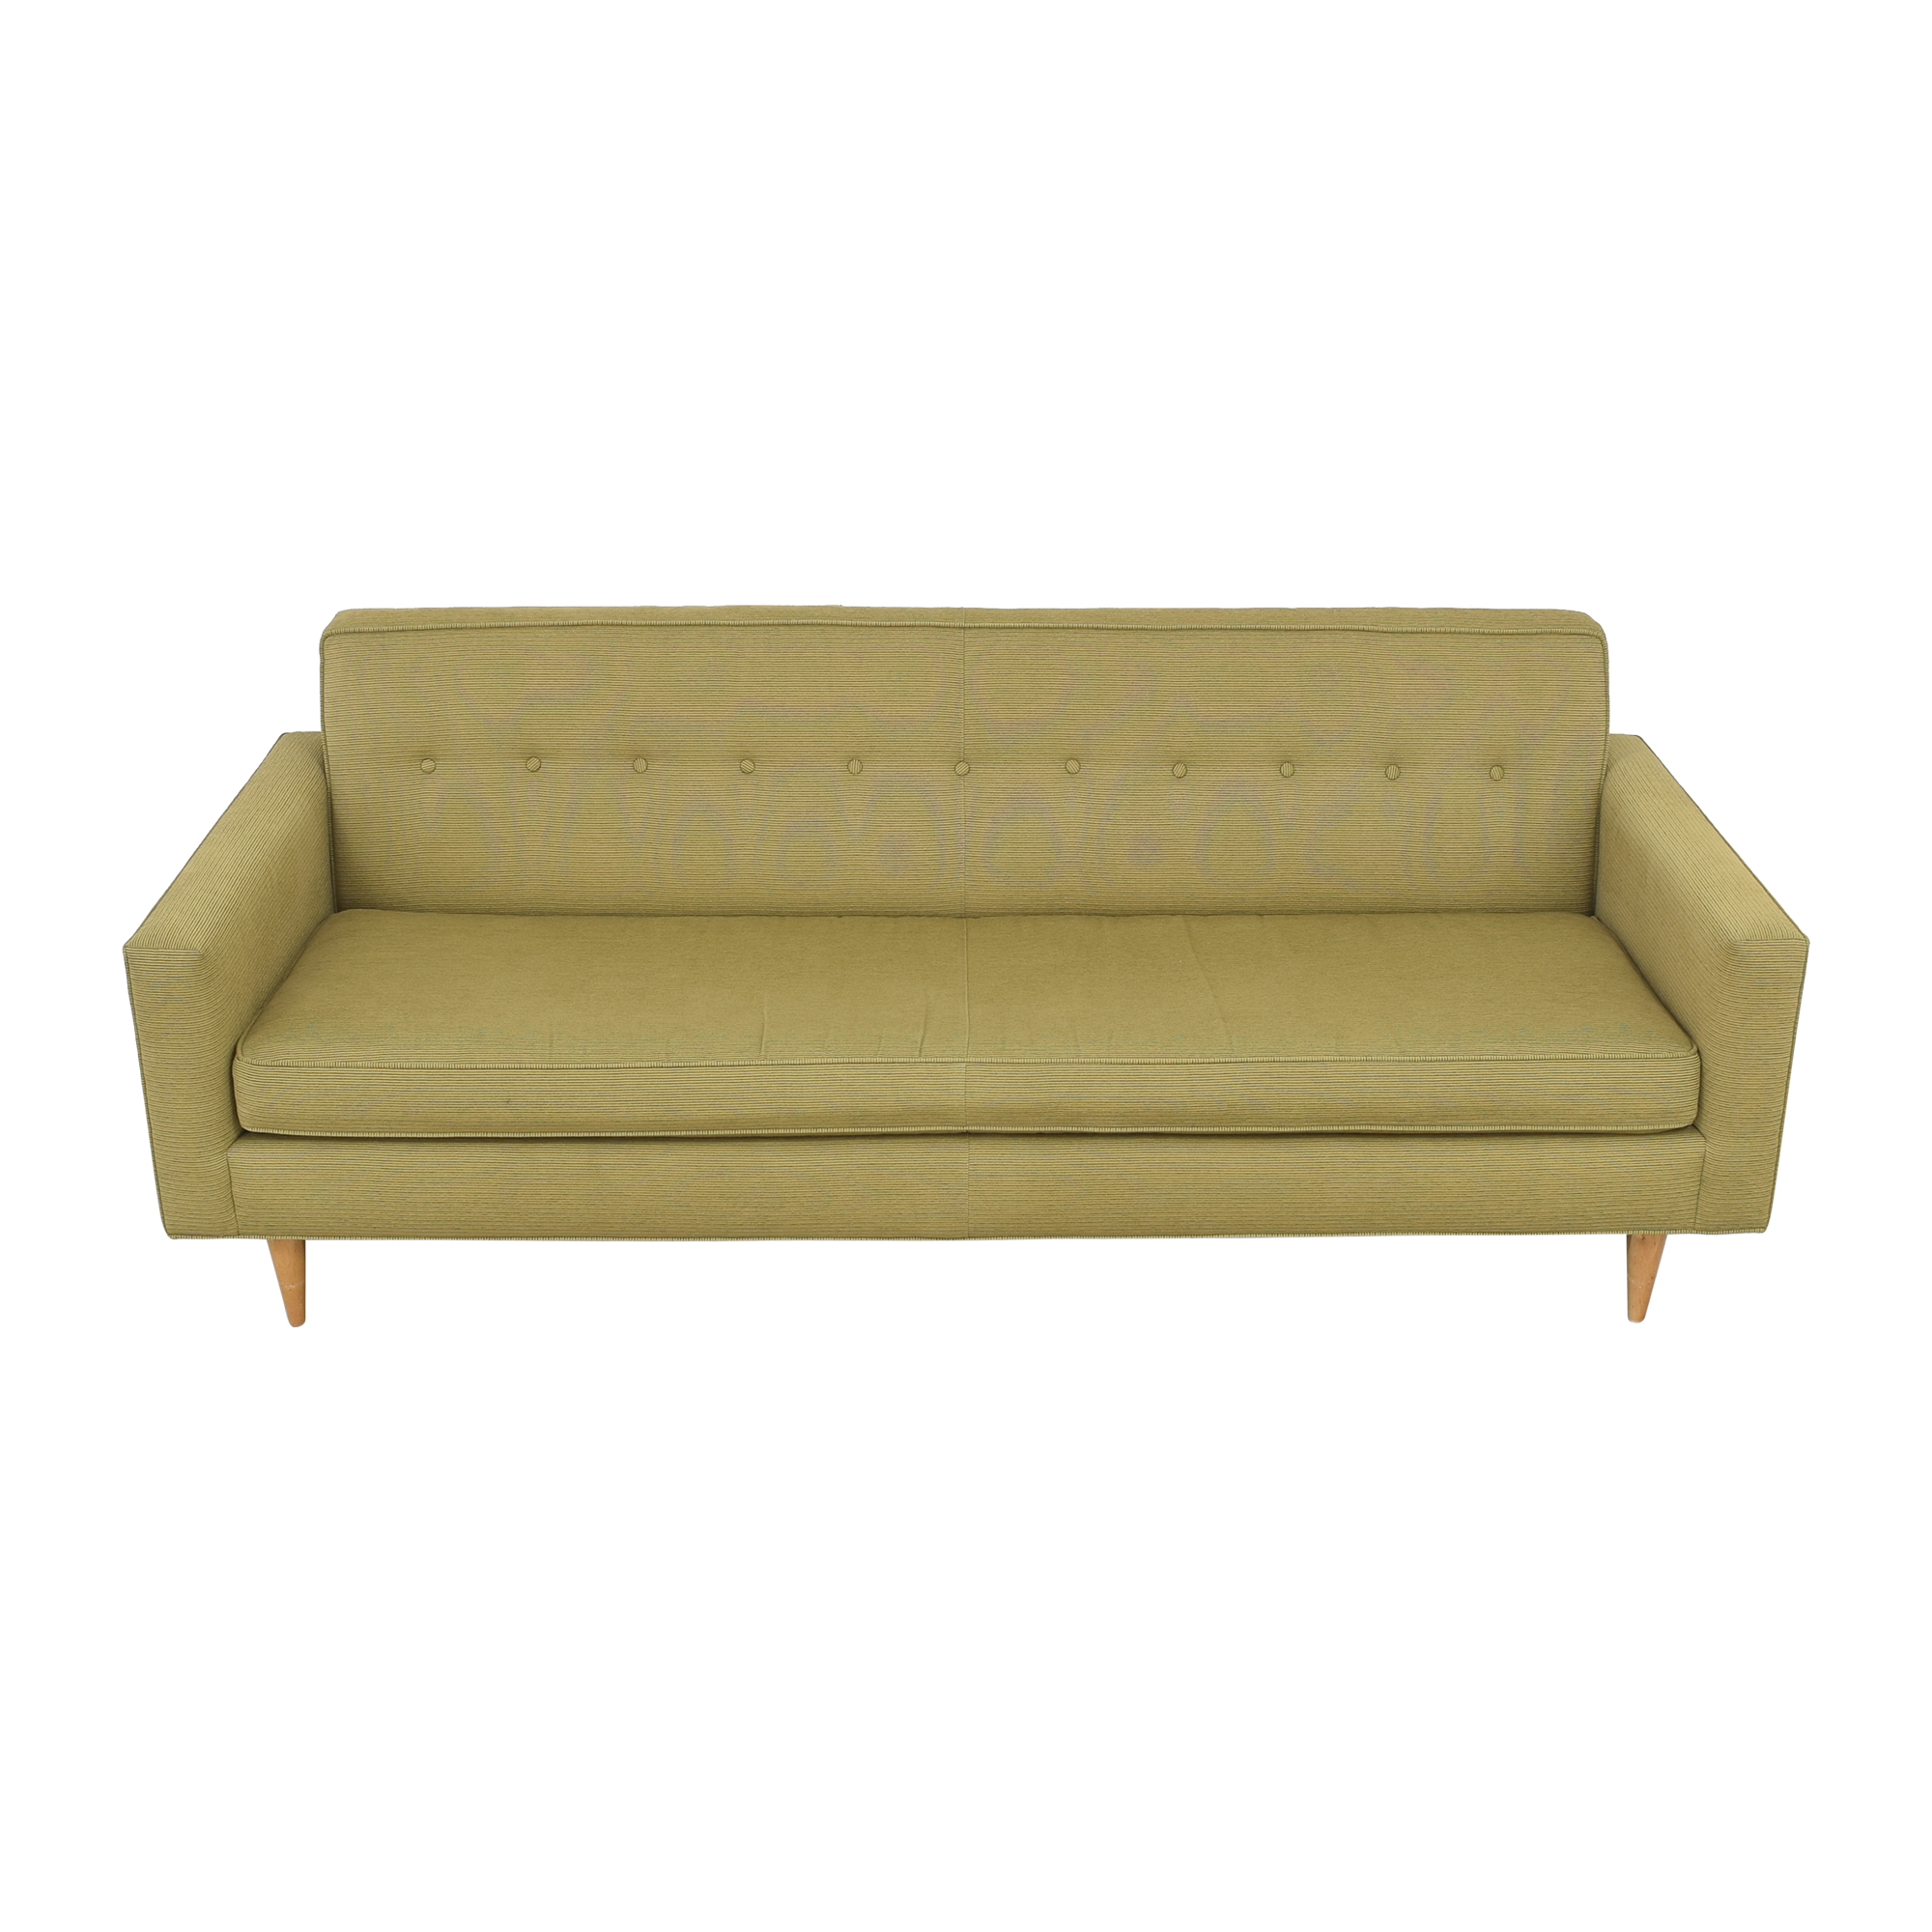 Design Within Reach Design Within Reach Bantam Mid Century Sofa pa